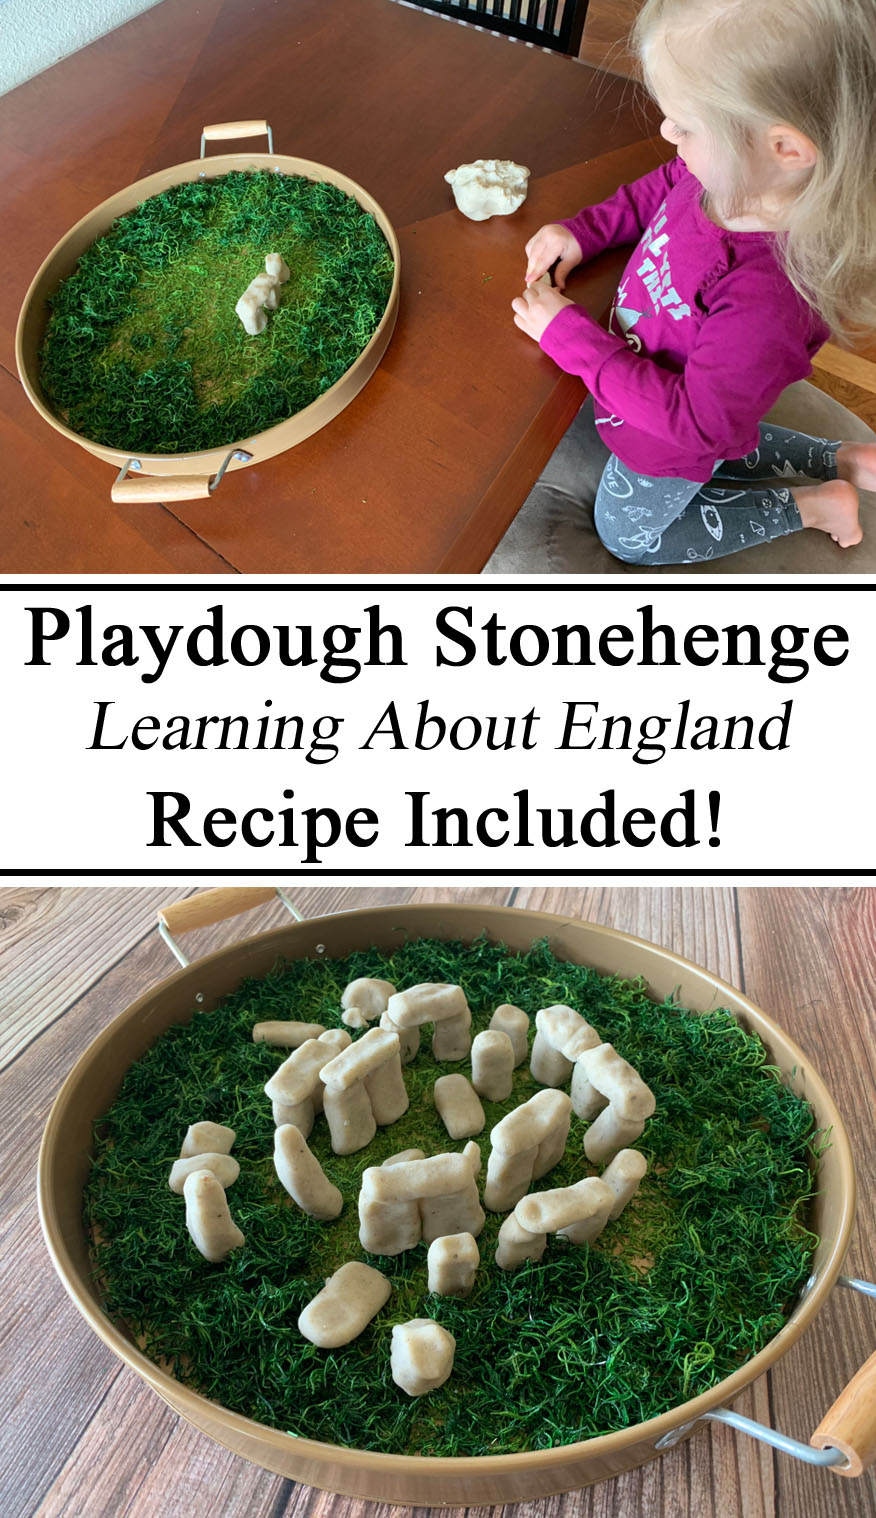 Stonehenge, England Unit, Great Britain, British, Royal, Play Doh Dough Playdough, Hands on Learning, Play Based Learning Through Play, Waldorf, Small World Play, Diorama, Sand Playdough, Recipe, Inspiration, Ideas, Preschool, PreK, Kindergarten, Homeschool, Homeschooling, Unschool, Unschooling, Early Childhood Education, teachers, Parents